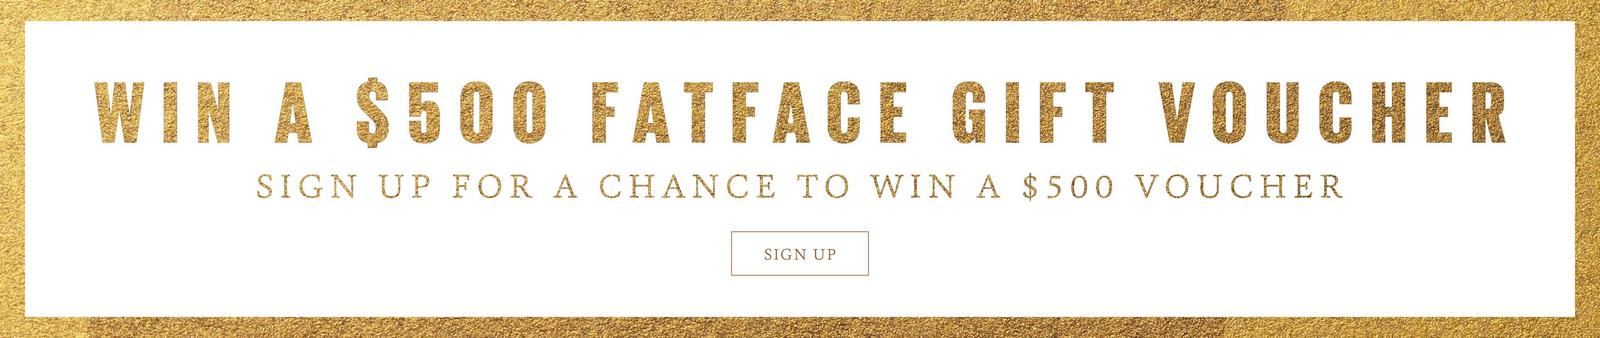 Sign up for a chance to win